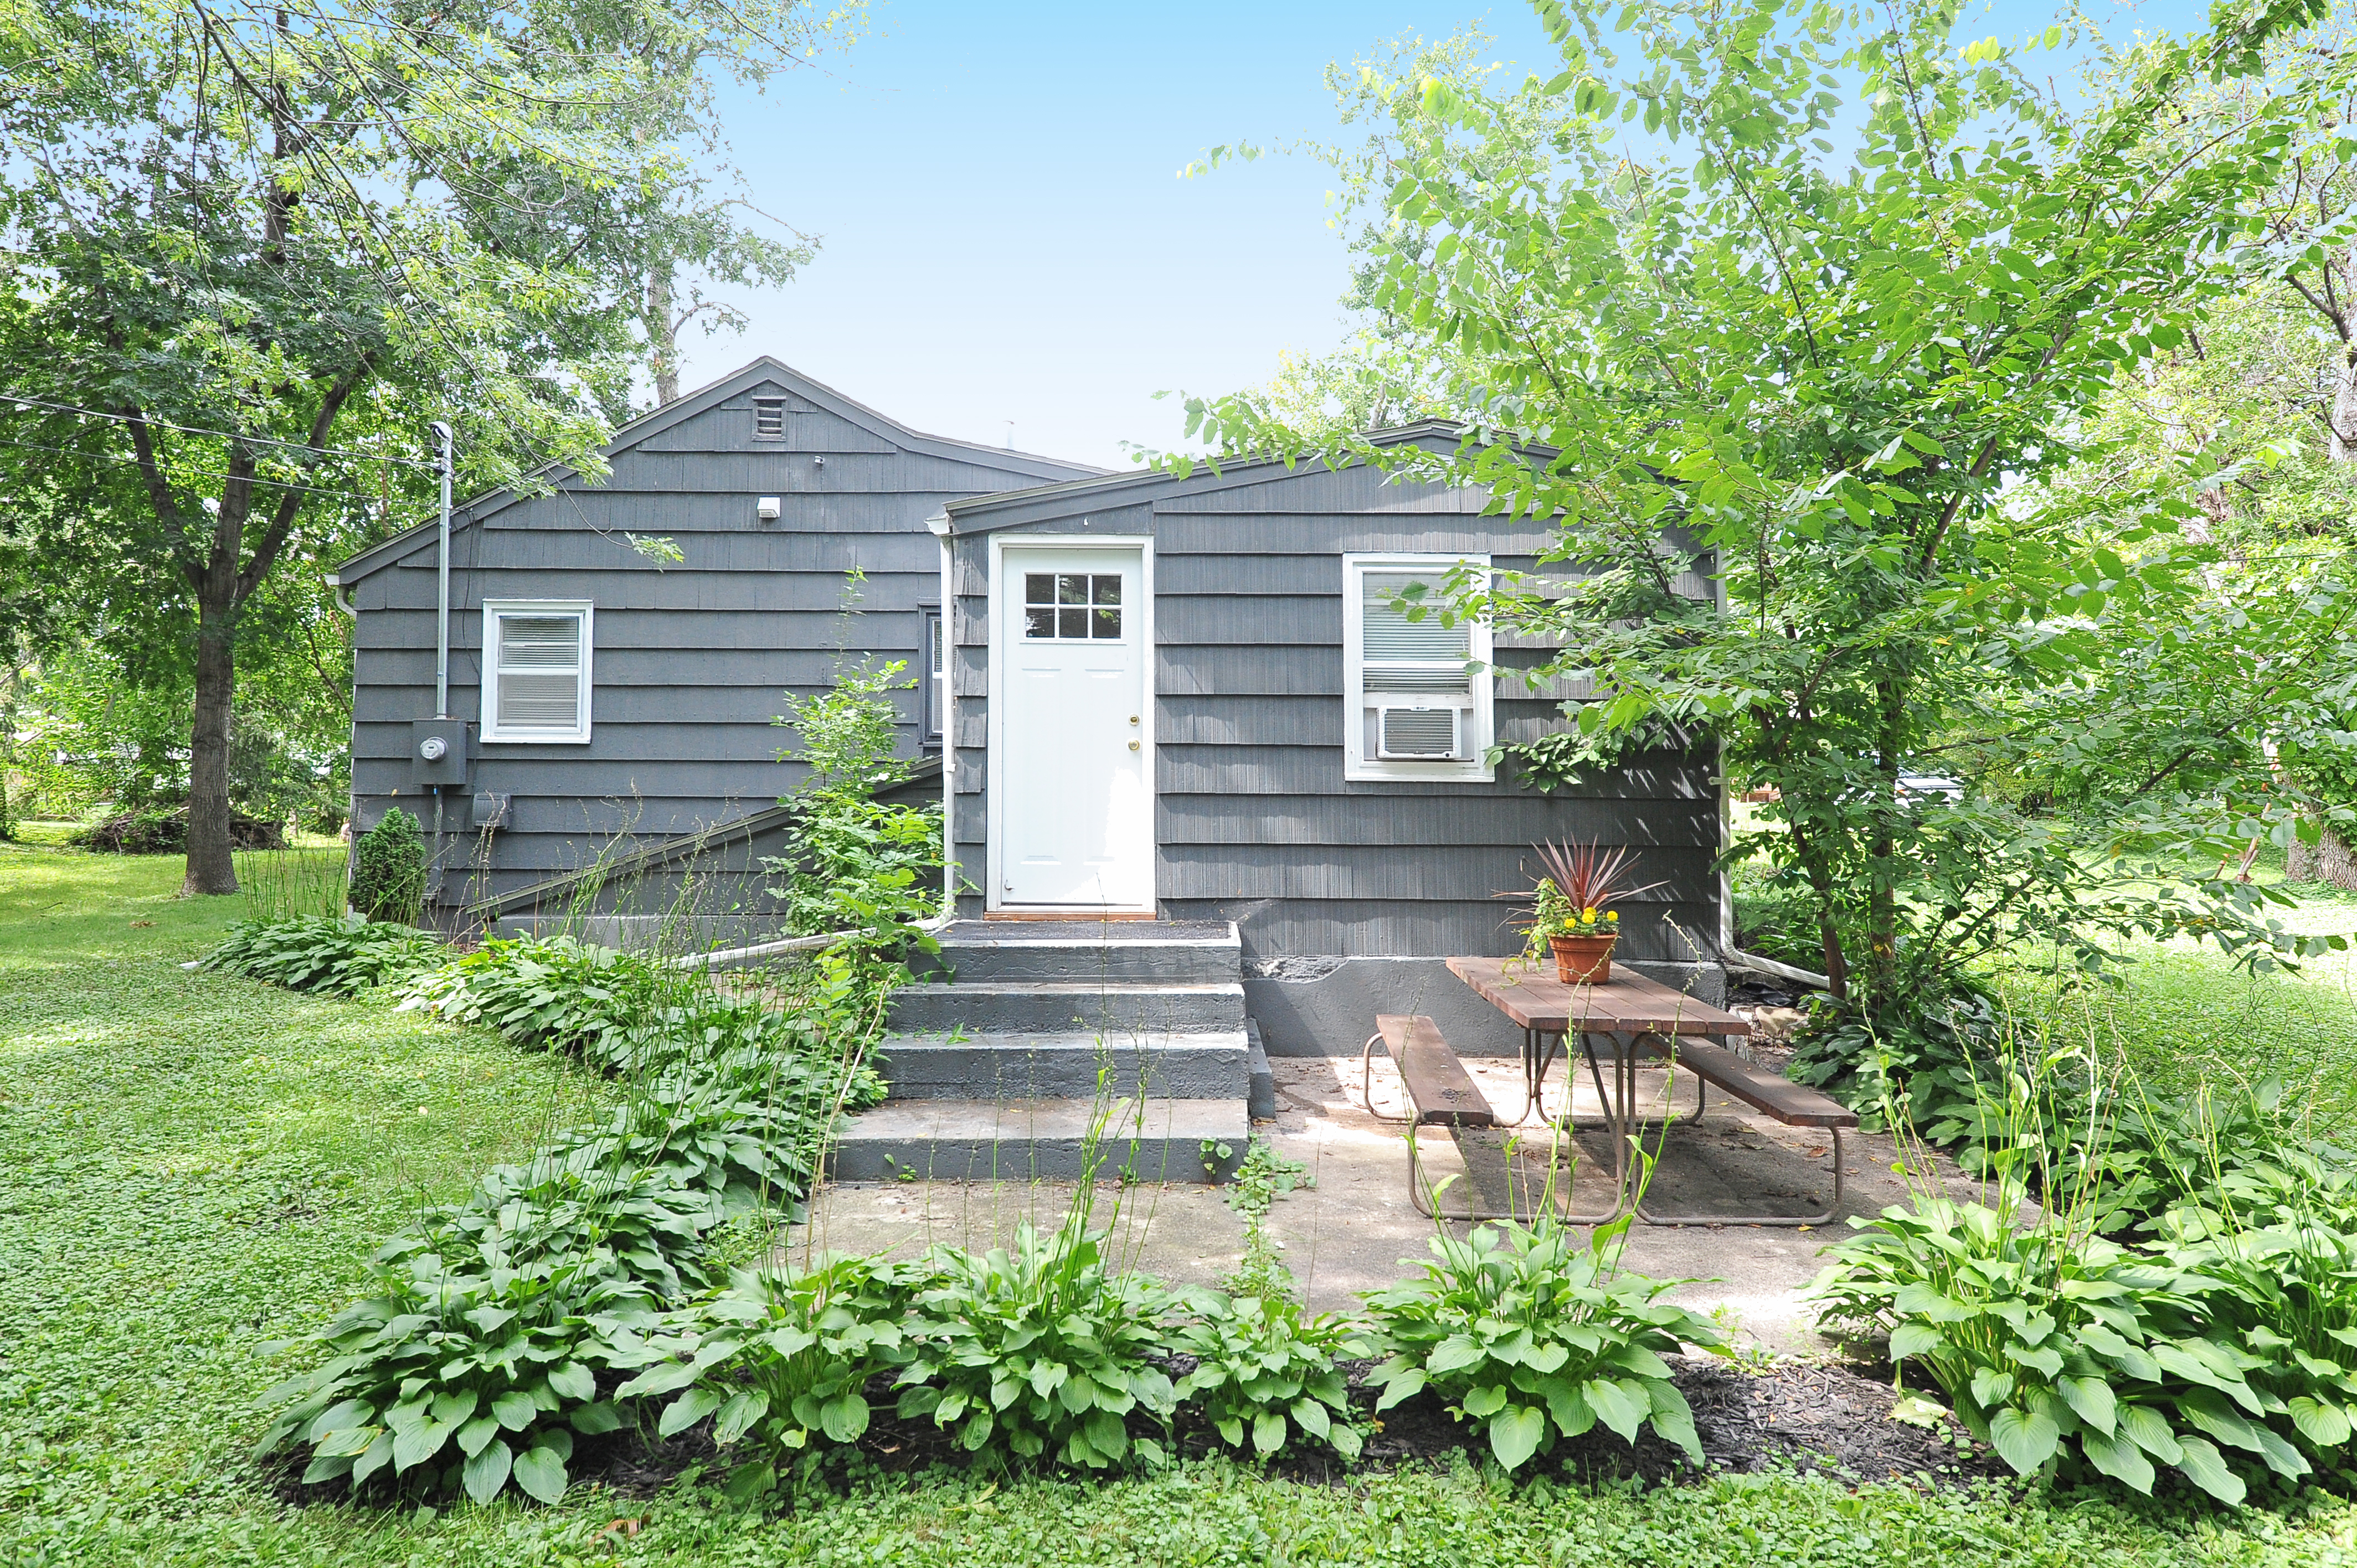 8651 Dupont Ave S: Back Exterior